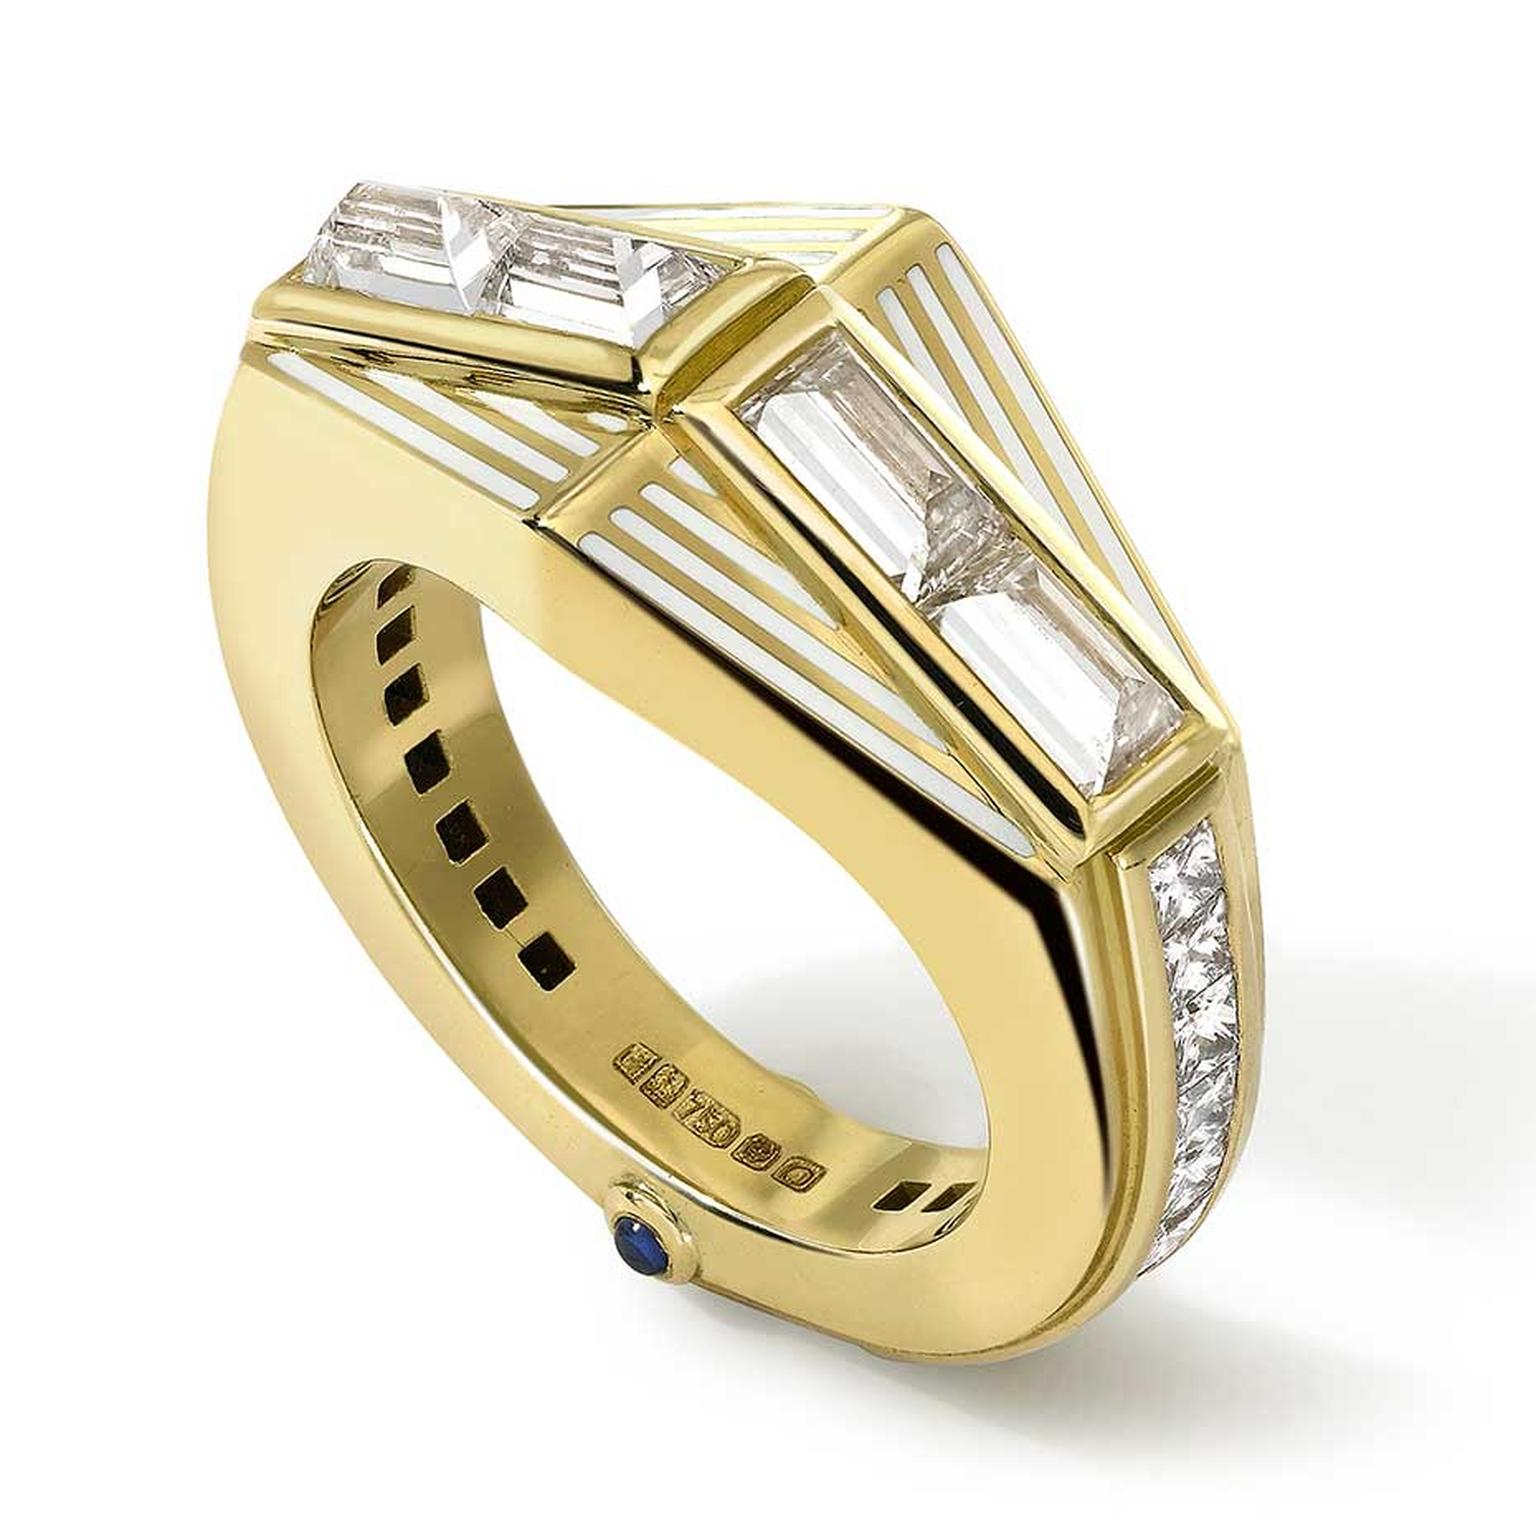 Art Deco-style diamond engagement ring by Emma Franklin with four, large, flipped baguette-cut diamonds, white enamel lines, channel-set princess-cut diamonds, and two cabochon star sapphires.